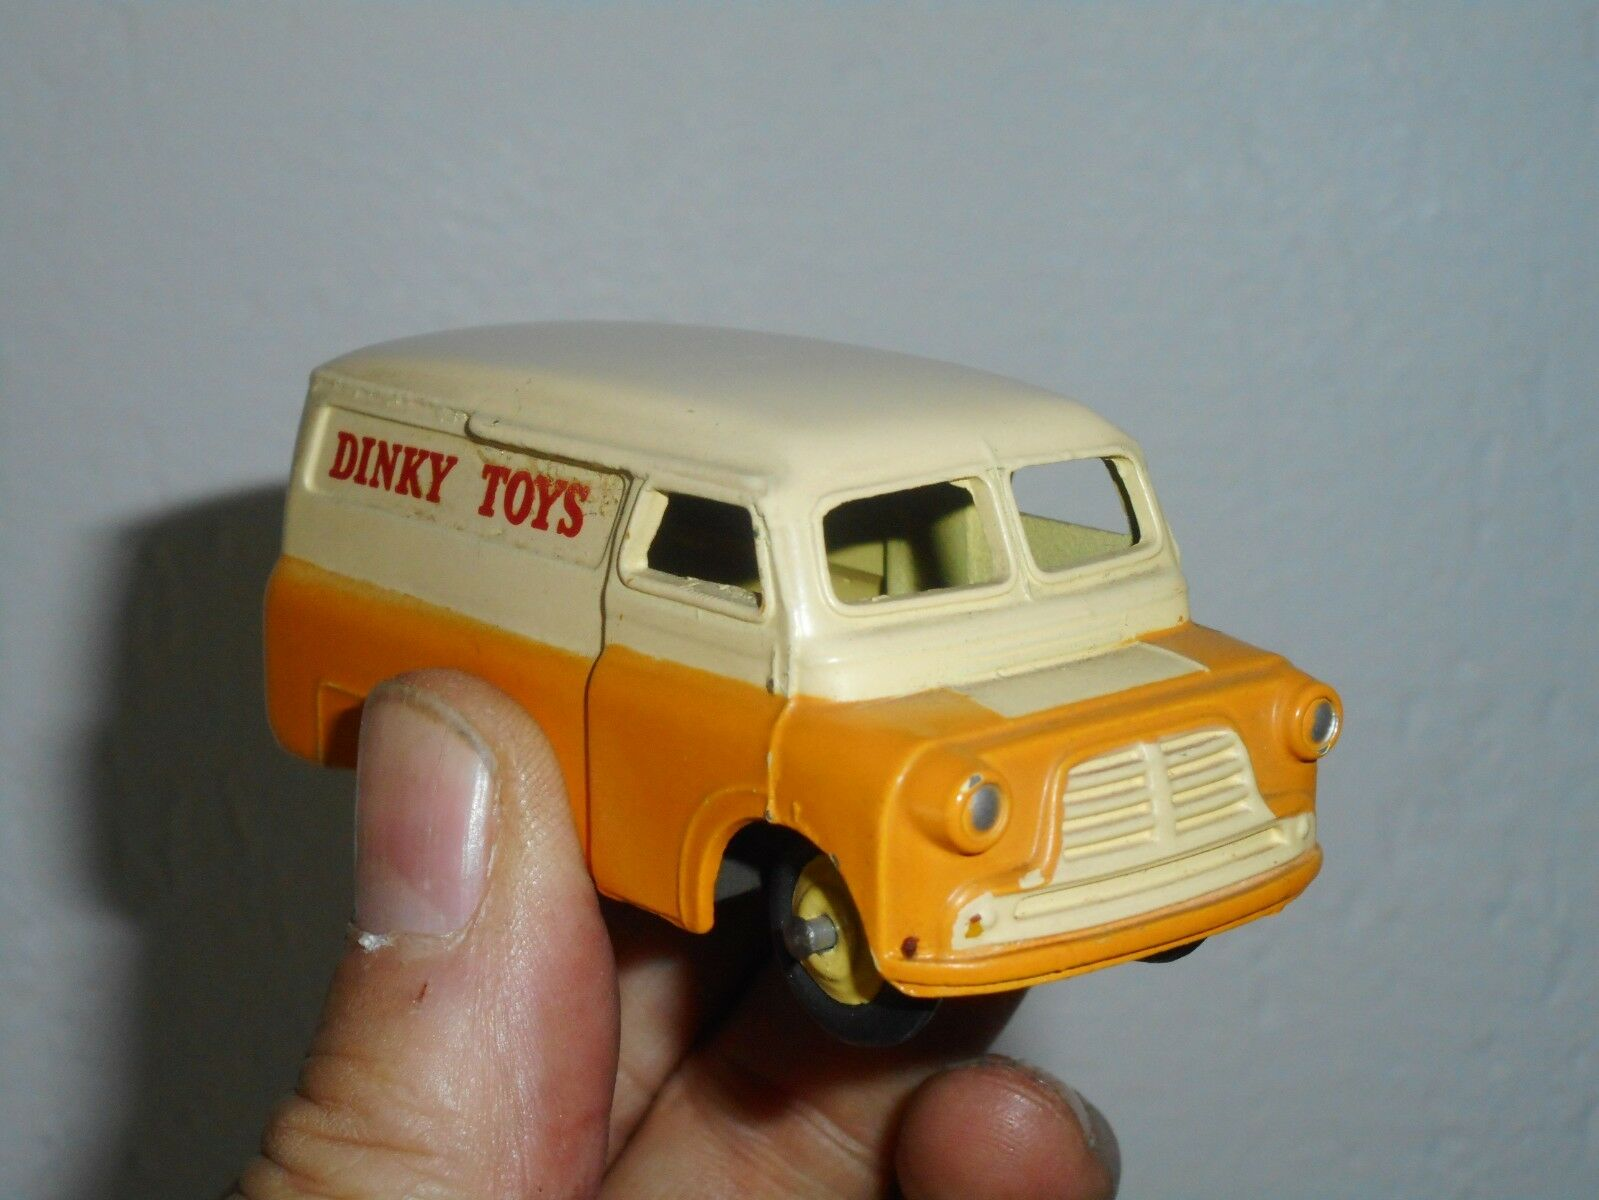 Dinky gb vérirable and former bedford dinky toys good condition   sports chauds